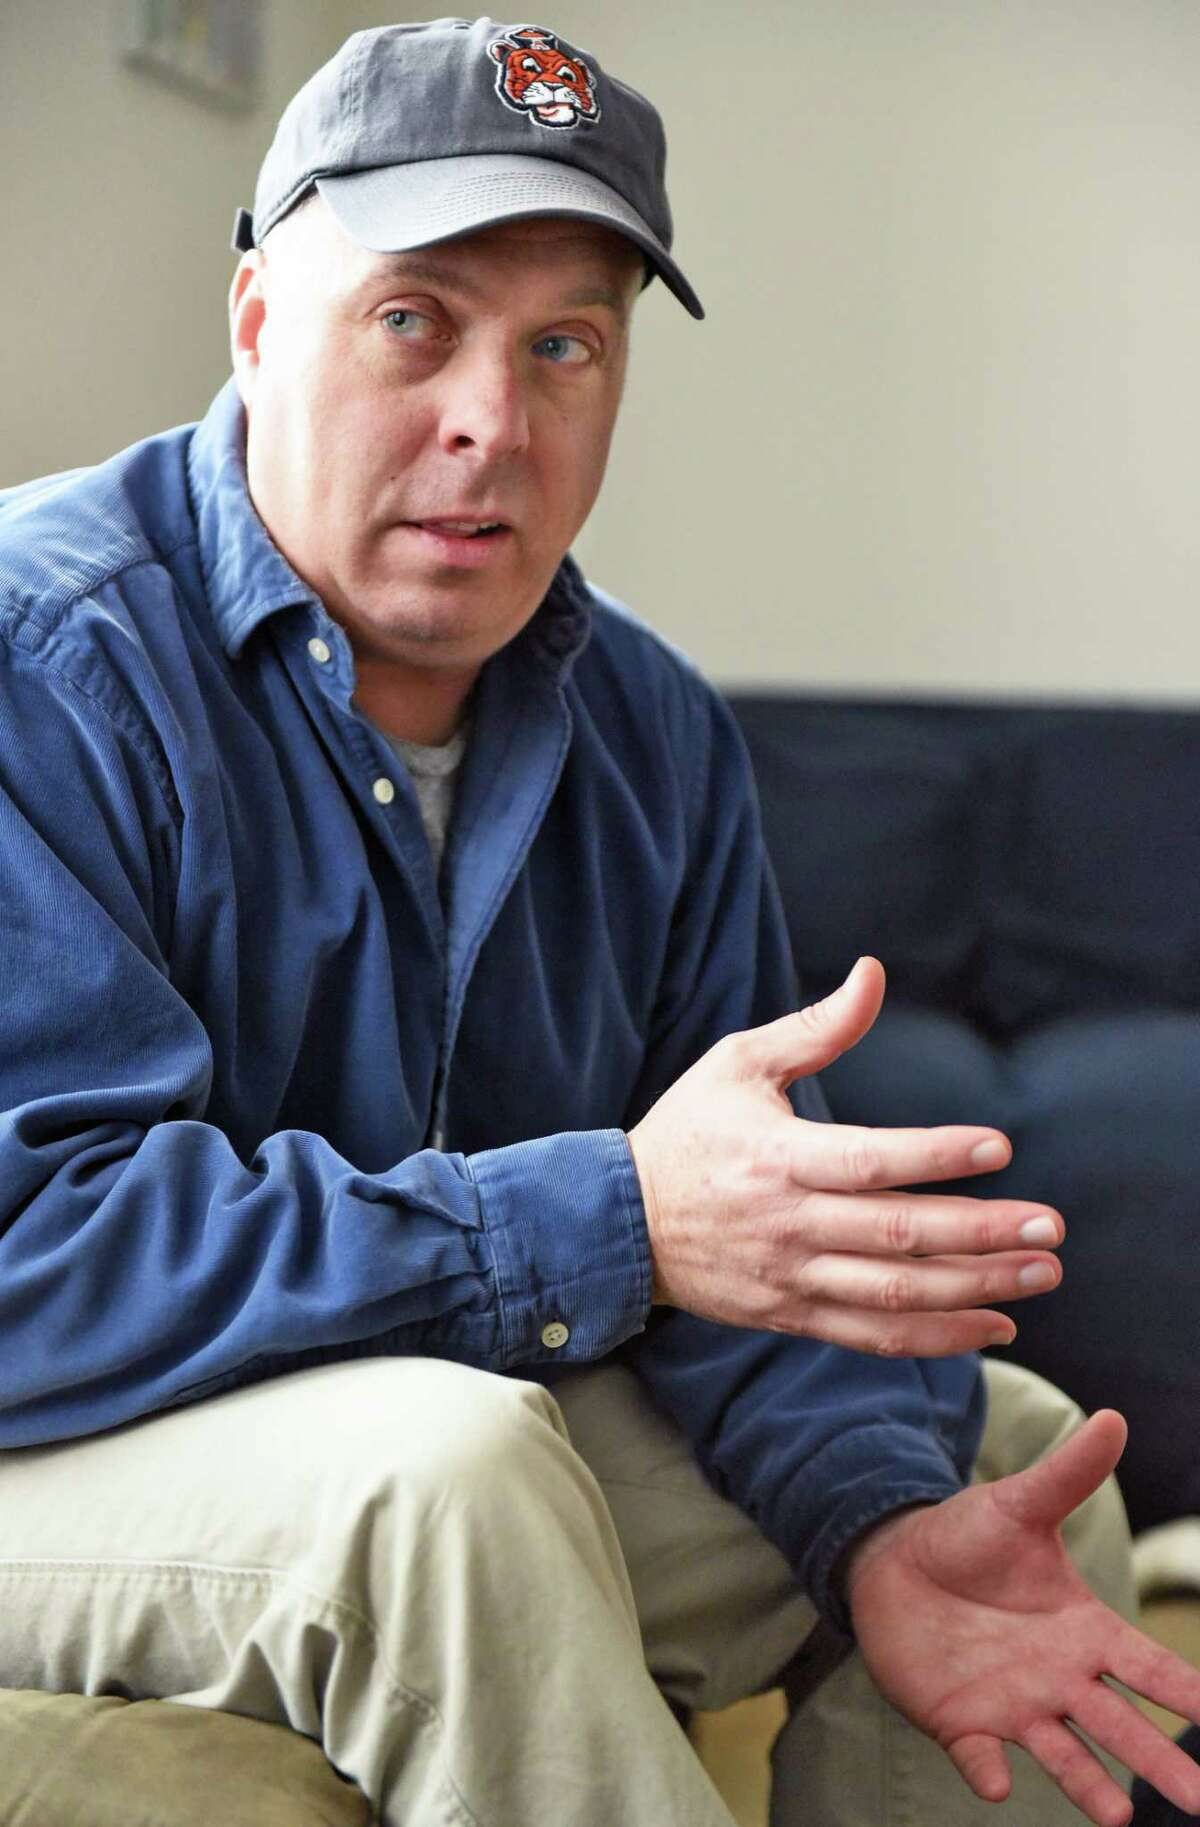 Jason Gough discusses being sexually abused as a child during an interview at his home Friday Feb. 17, 2017 in Delmar, NY. (John Carl D'Annibale / Times Union)